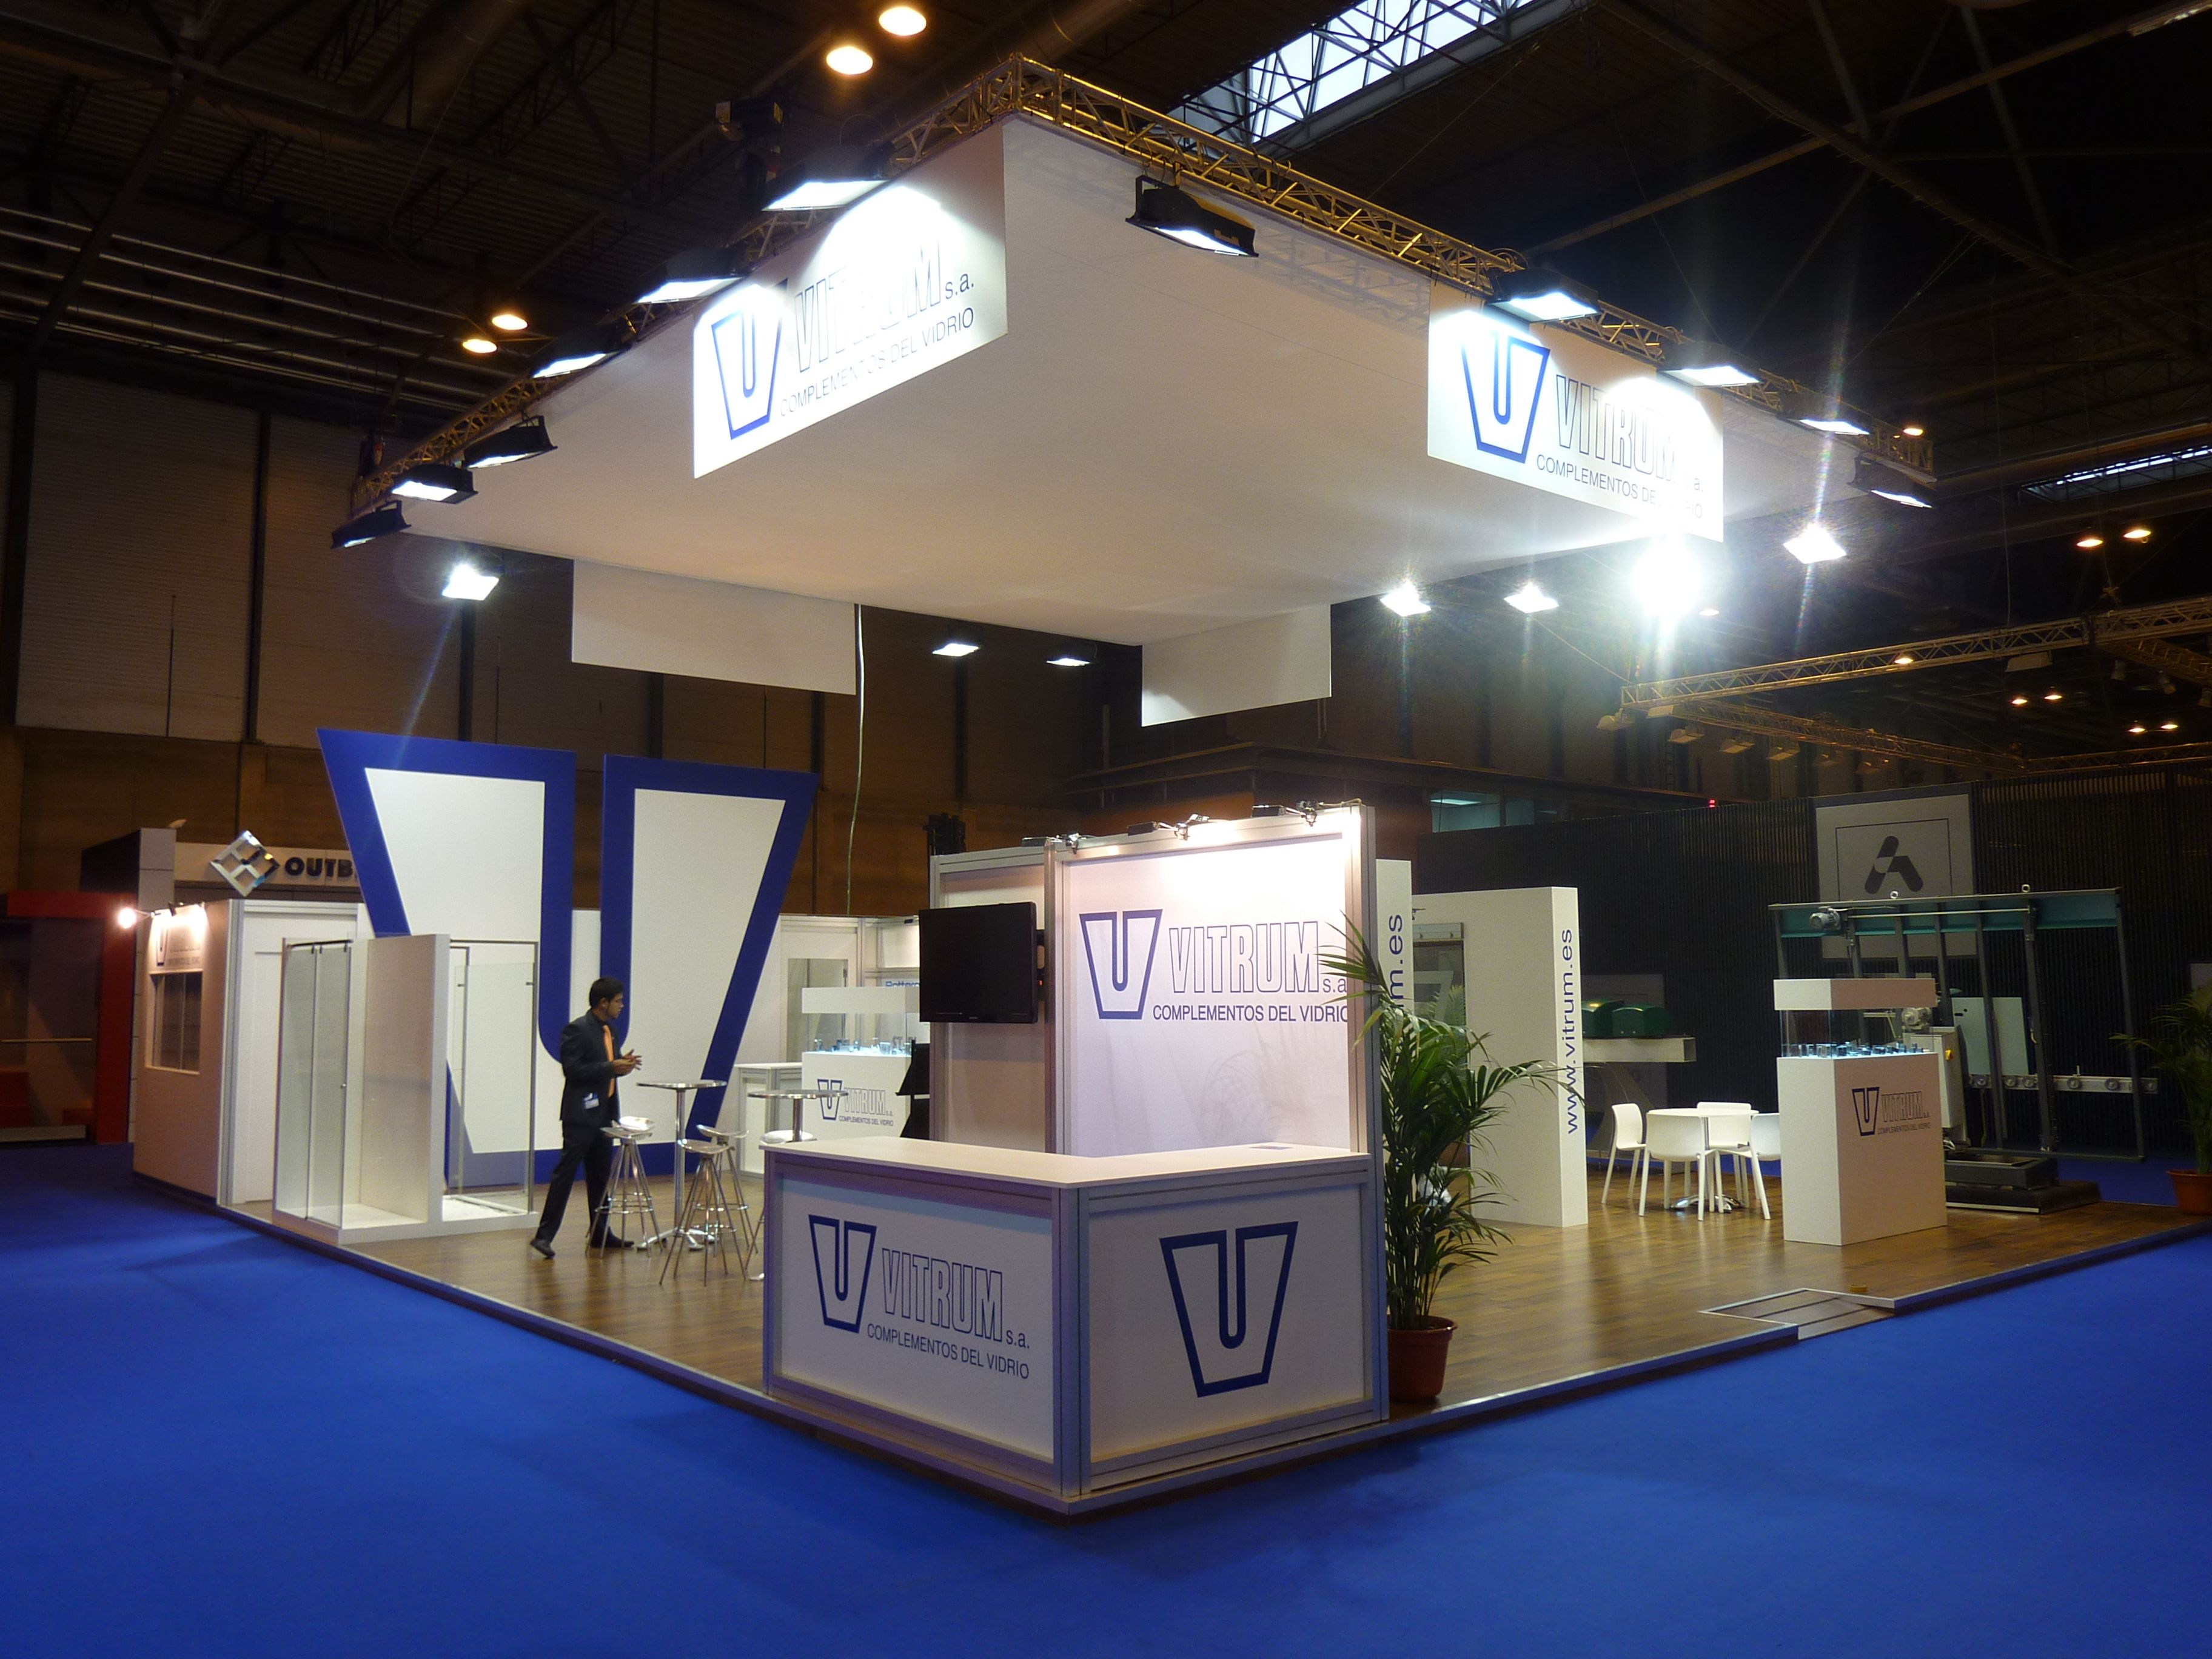 Exhibition Stand Builders Es : Stand by servis veteco stand builder barcelona spain europe